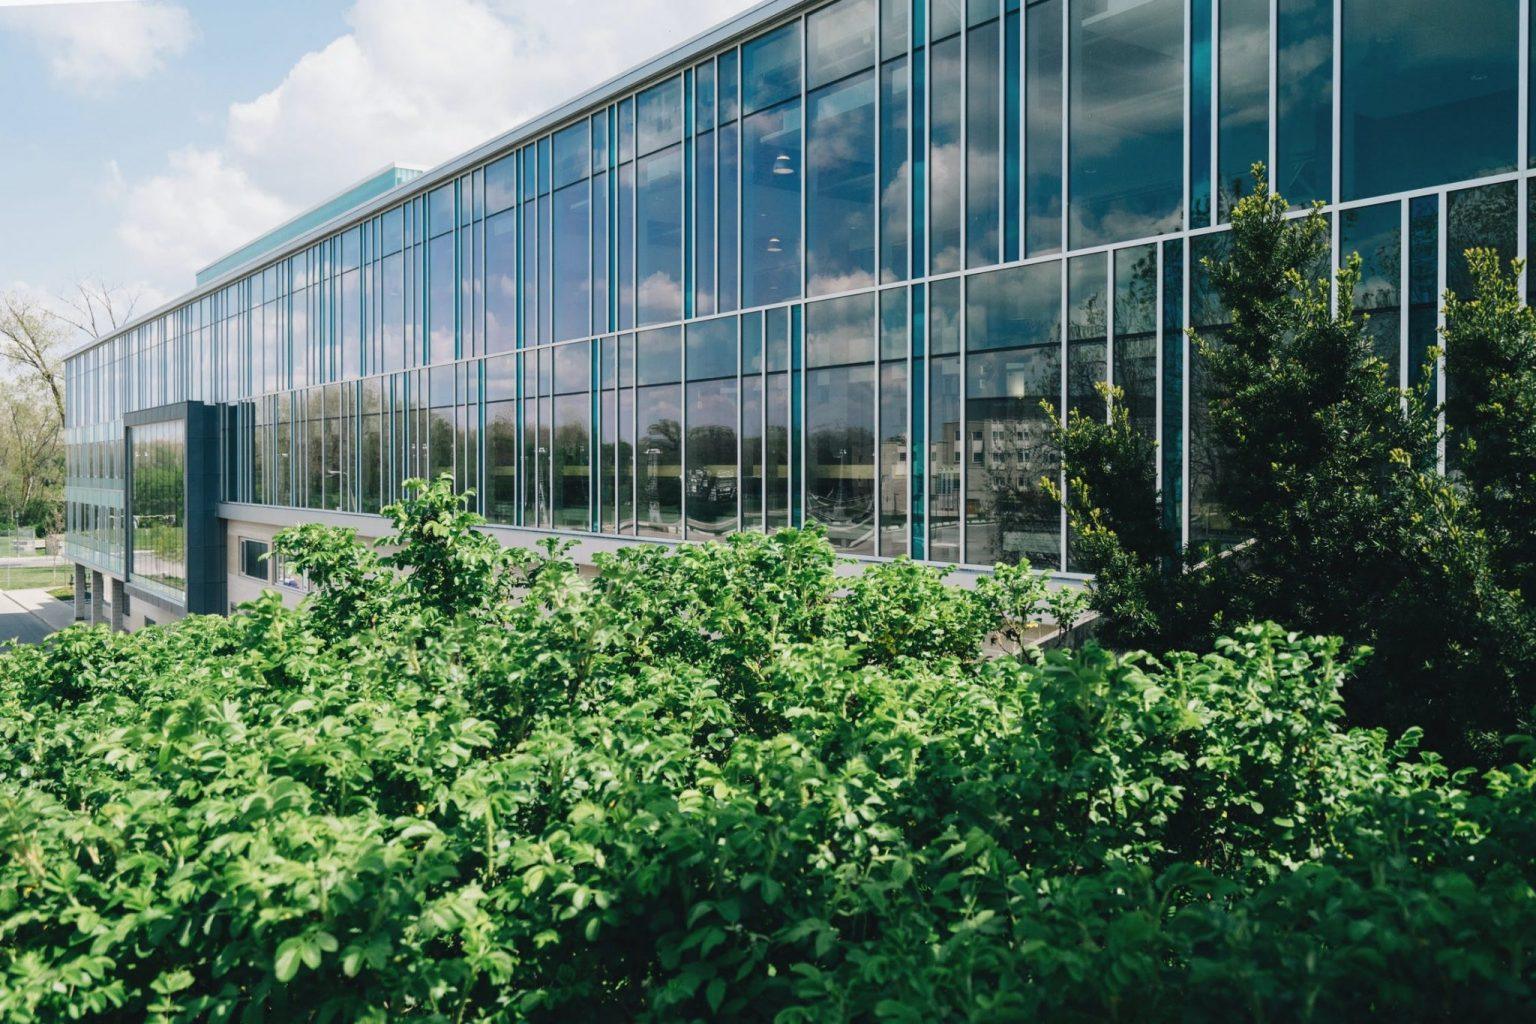 2021 Construction Trends Facilitated By Commercial Window Films - Commercial Window Film in Iowa City, Iowa